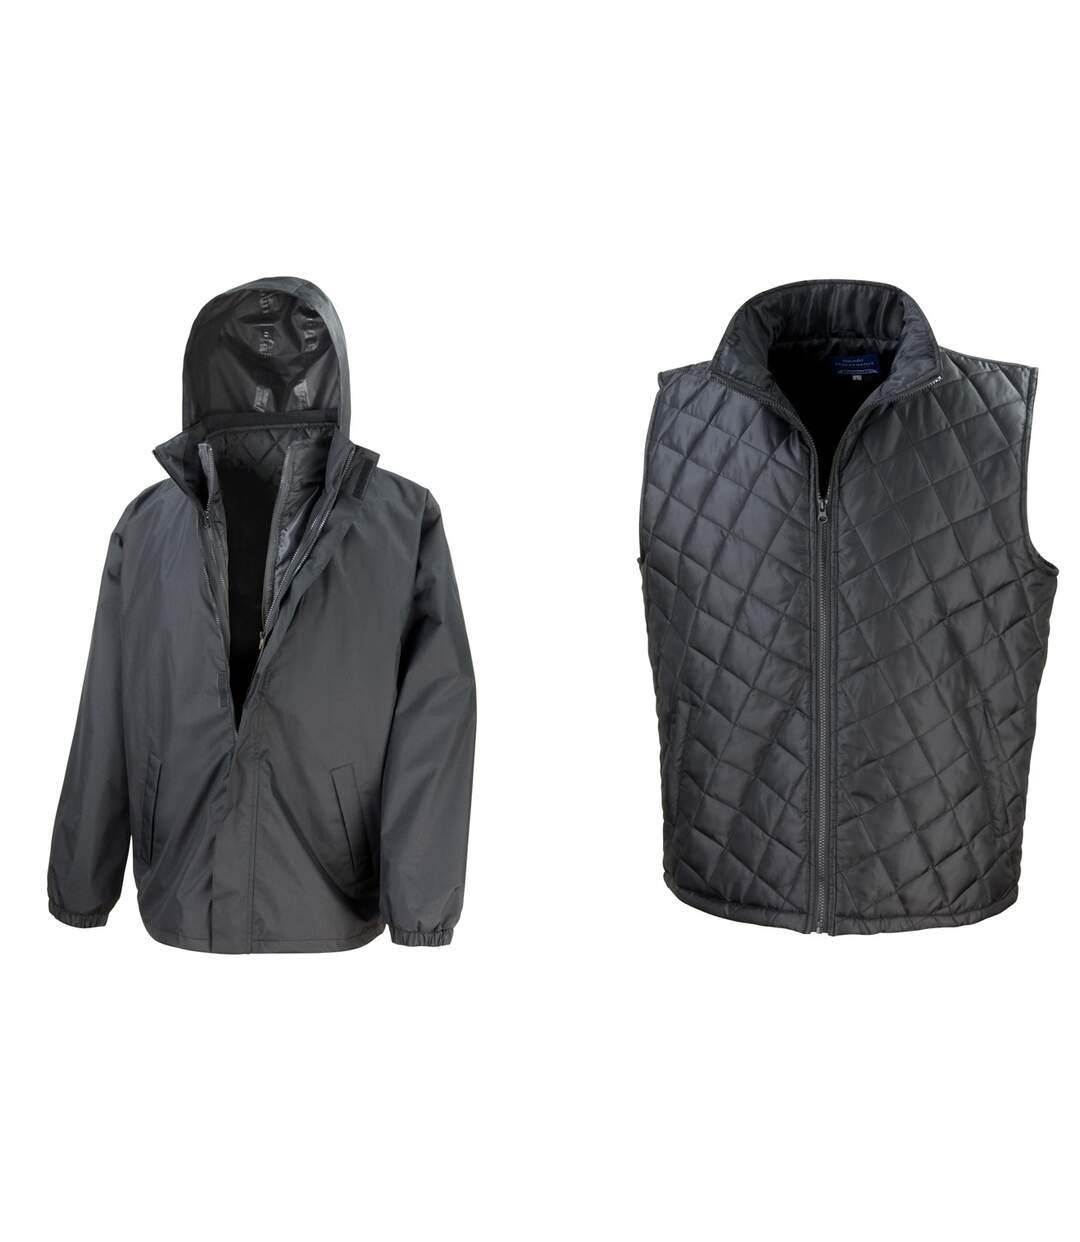 Result Mens Core 3-in-1 Jacket With Quilted Bodywarmer Jacket (Black) - UTBC908